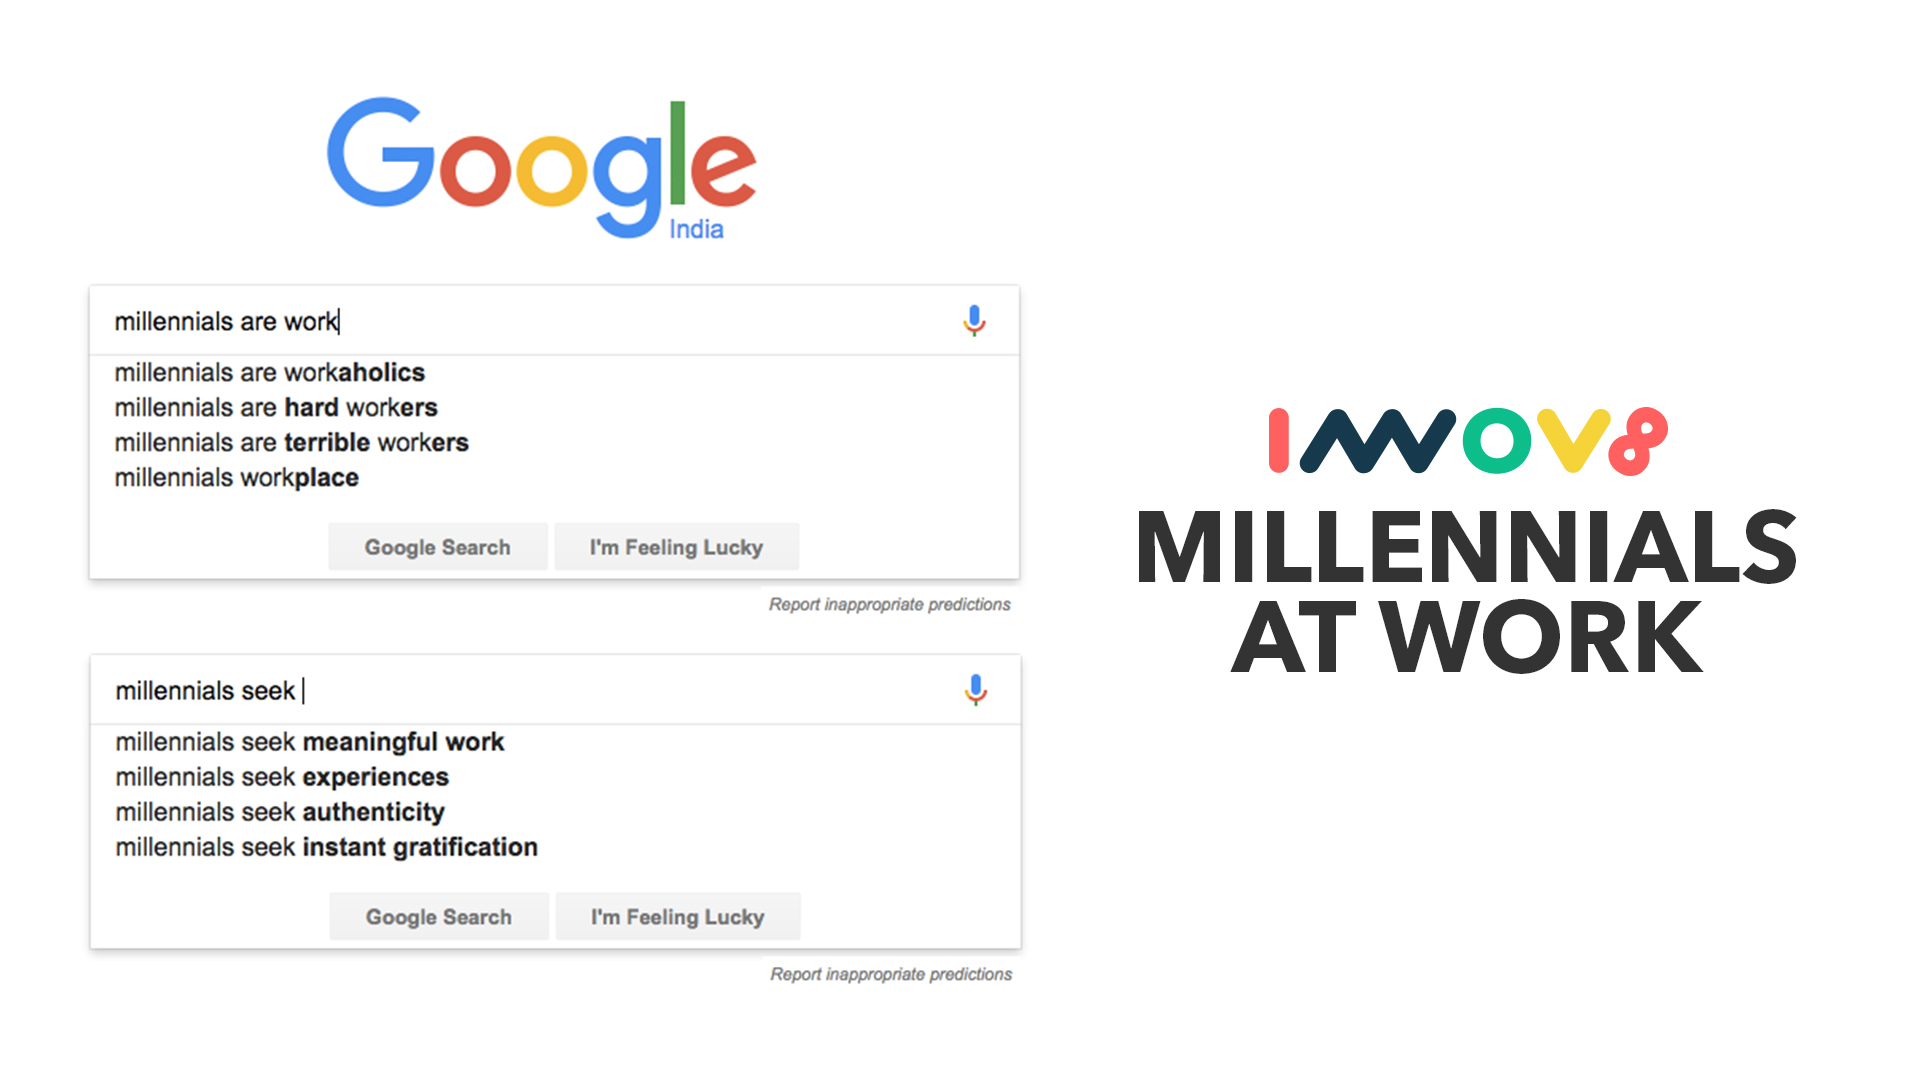 millennials-in-workforce-india